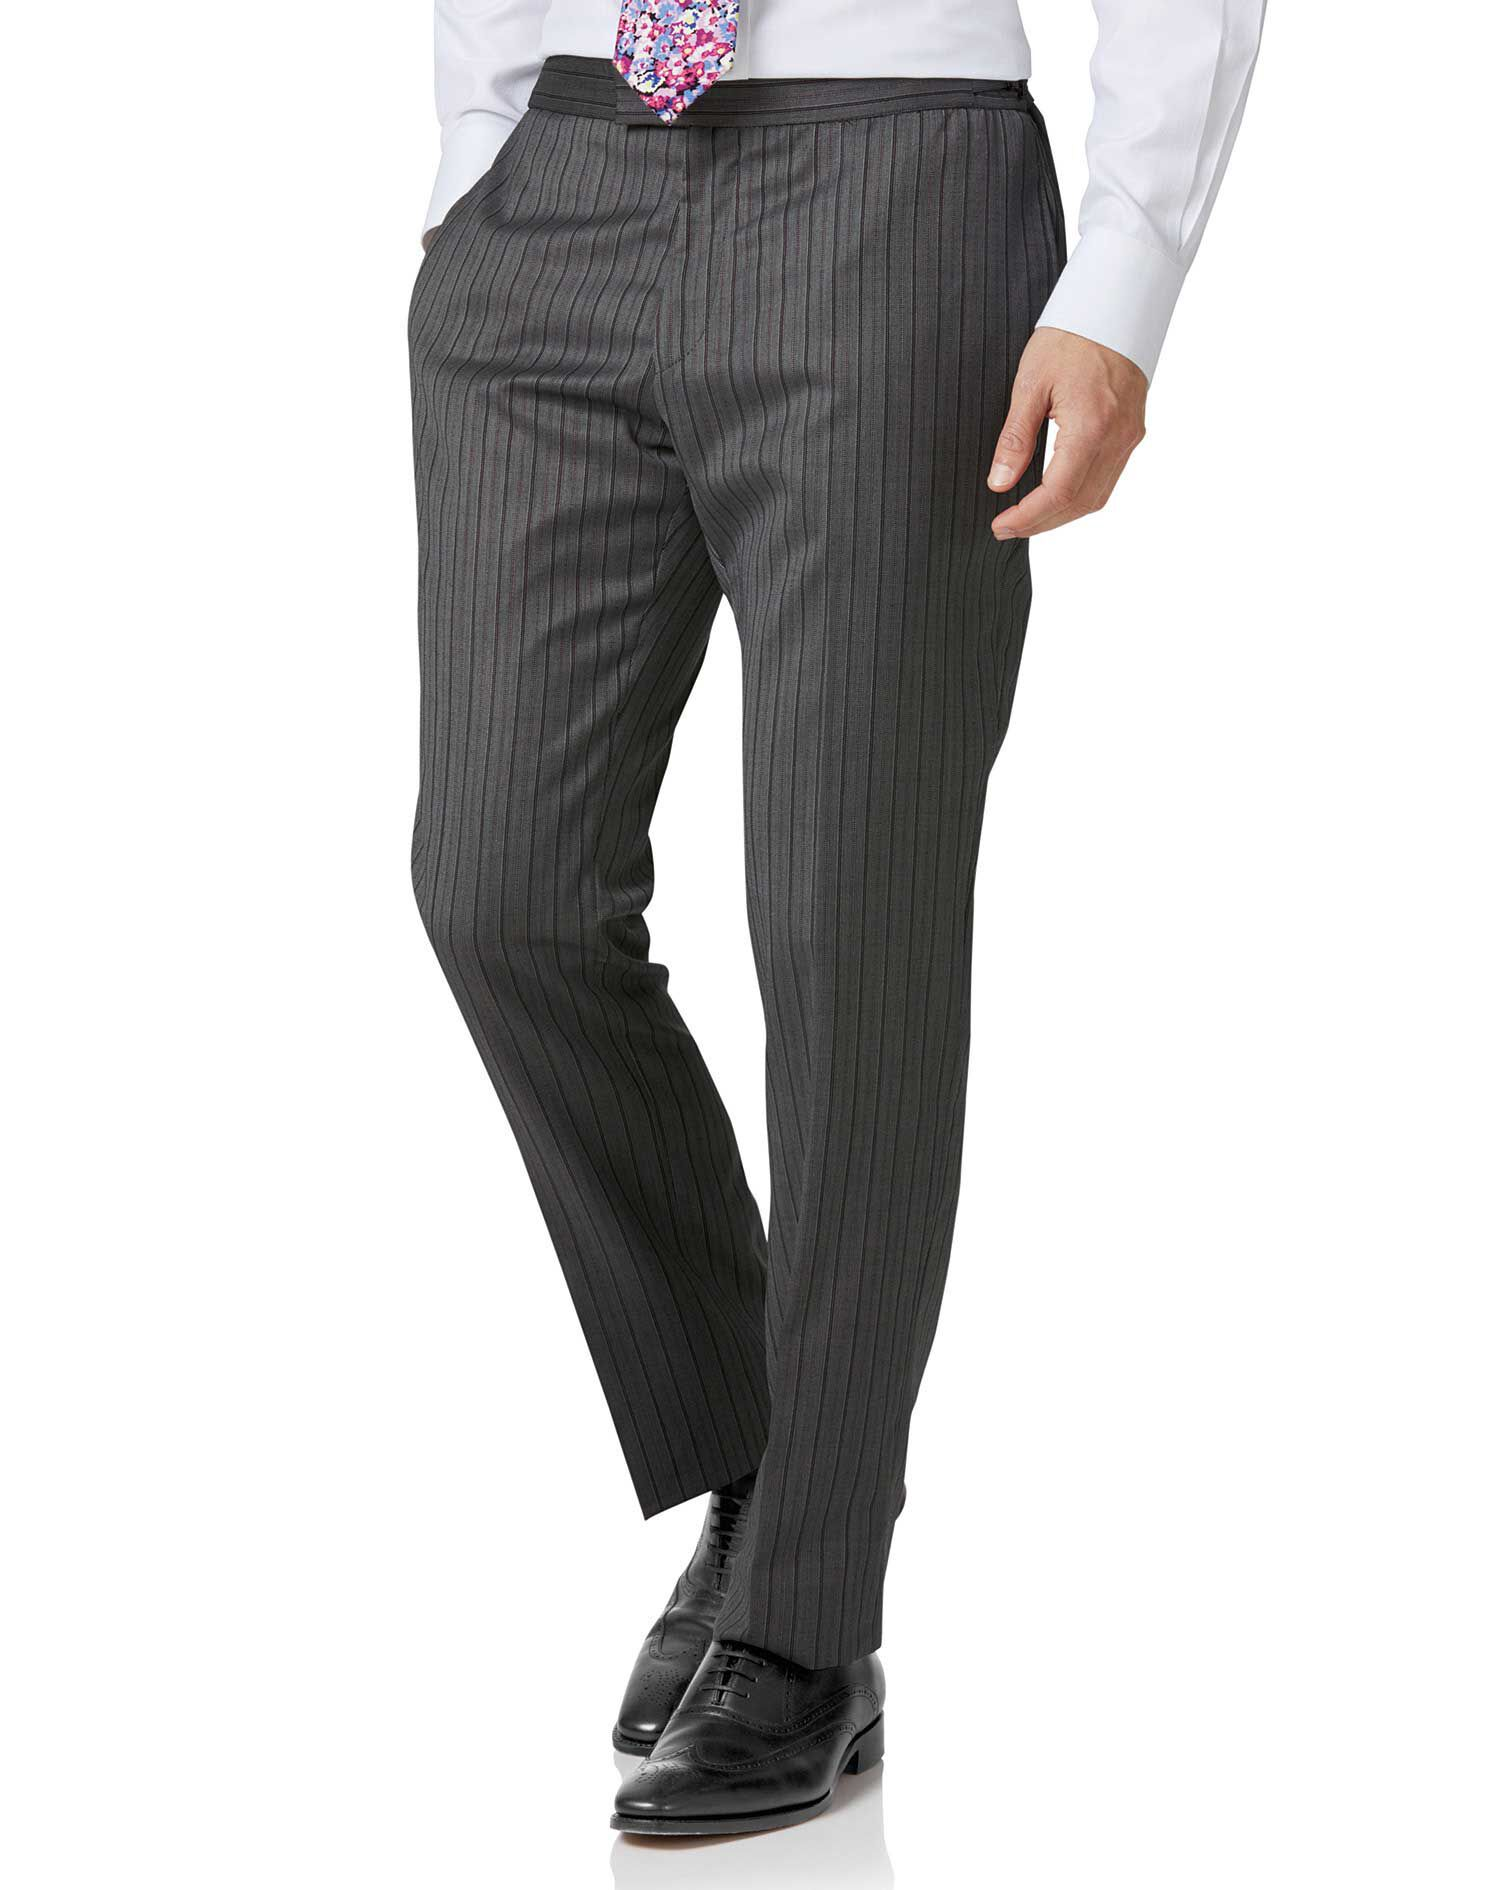 1920s Style Men's Pants & Plus Four Knickers Charles Tyrwhitt Charcoal slim fit morning suit trousers £120.00 AT vintagedancer.com